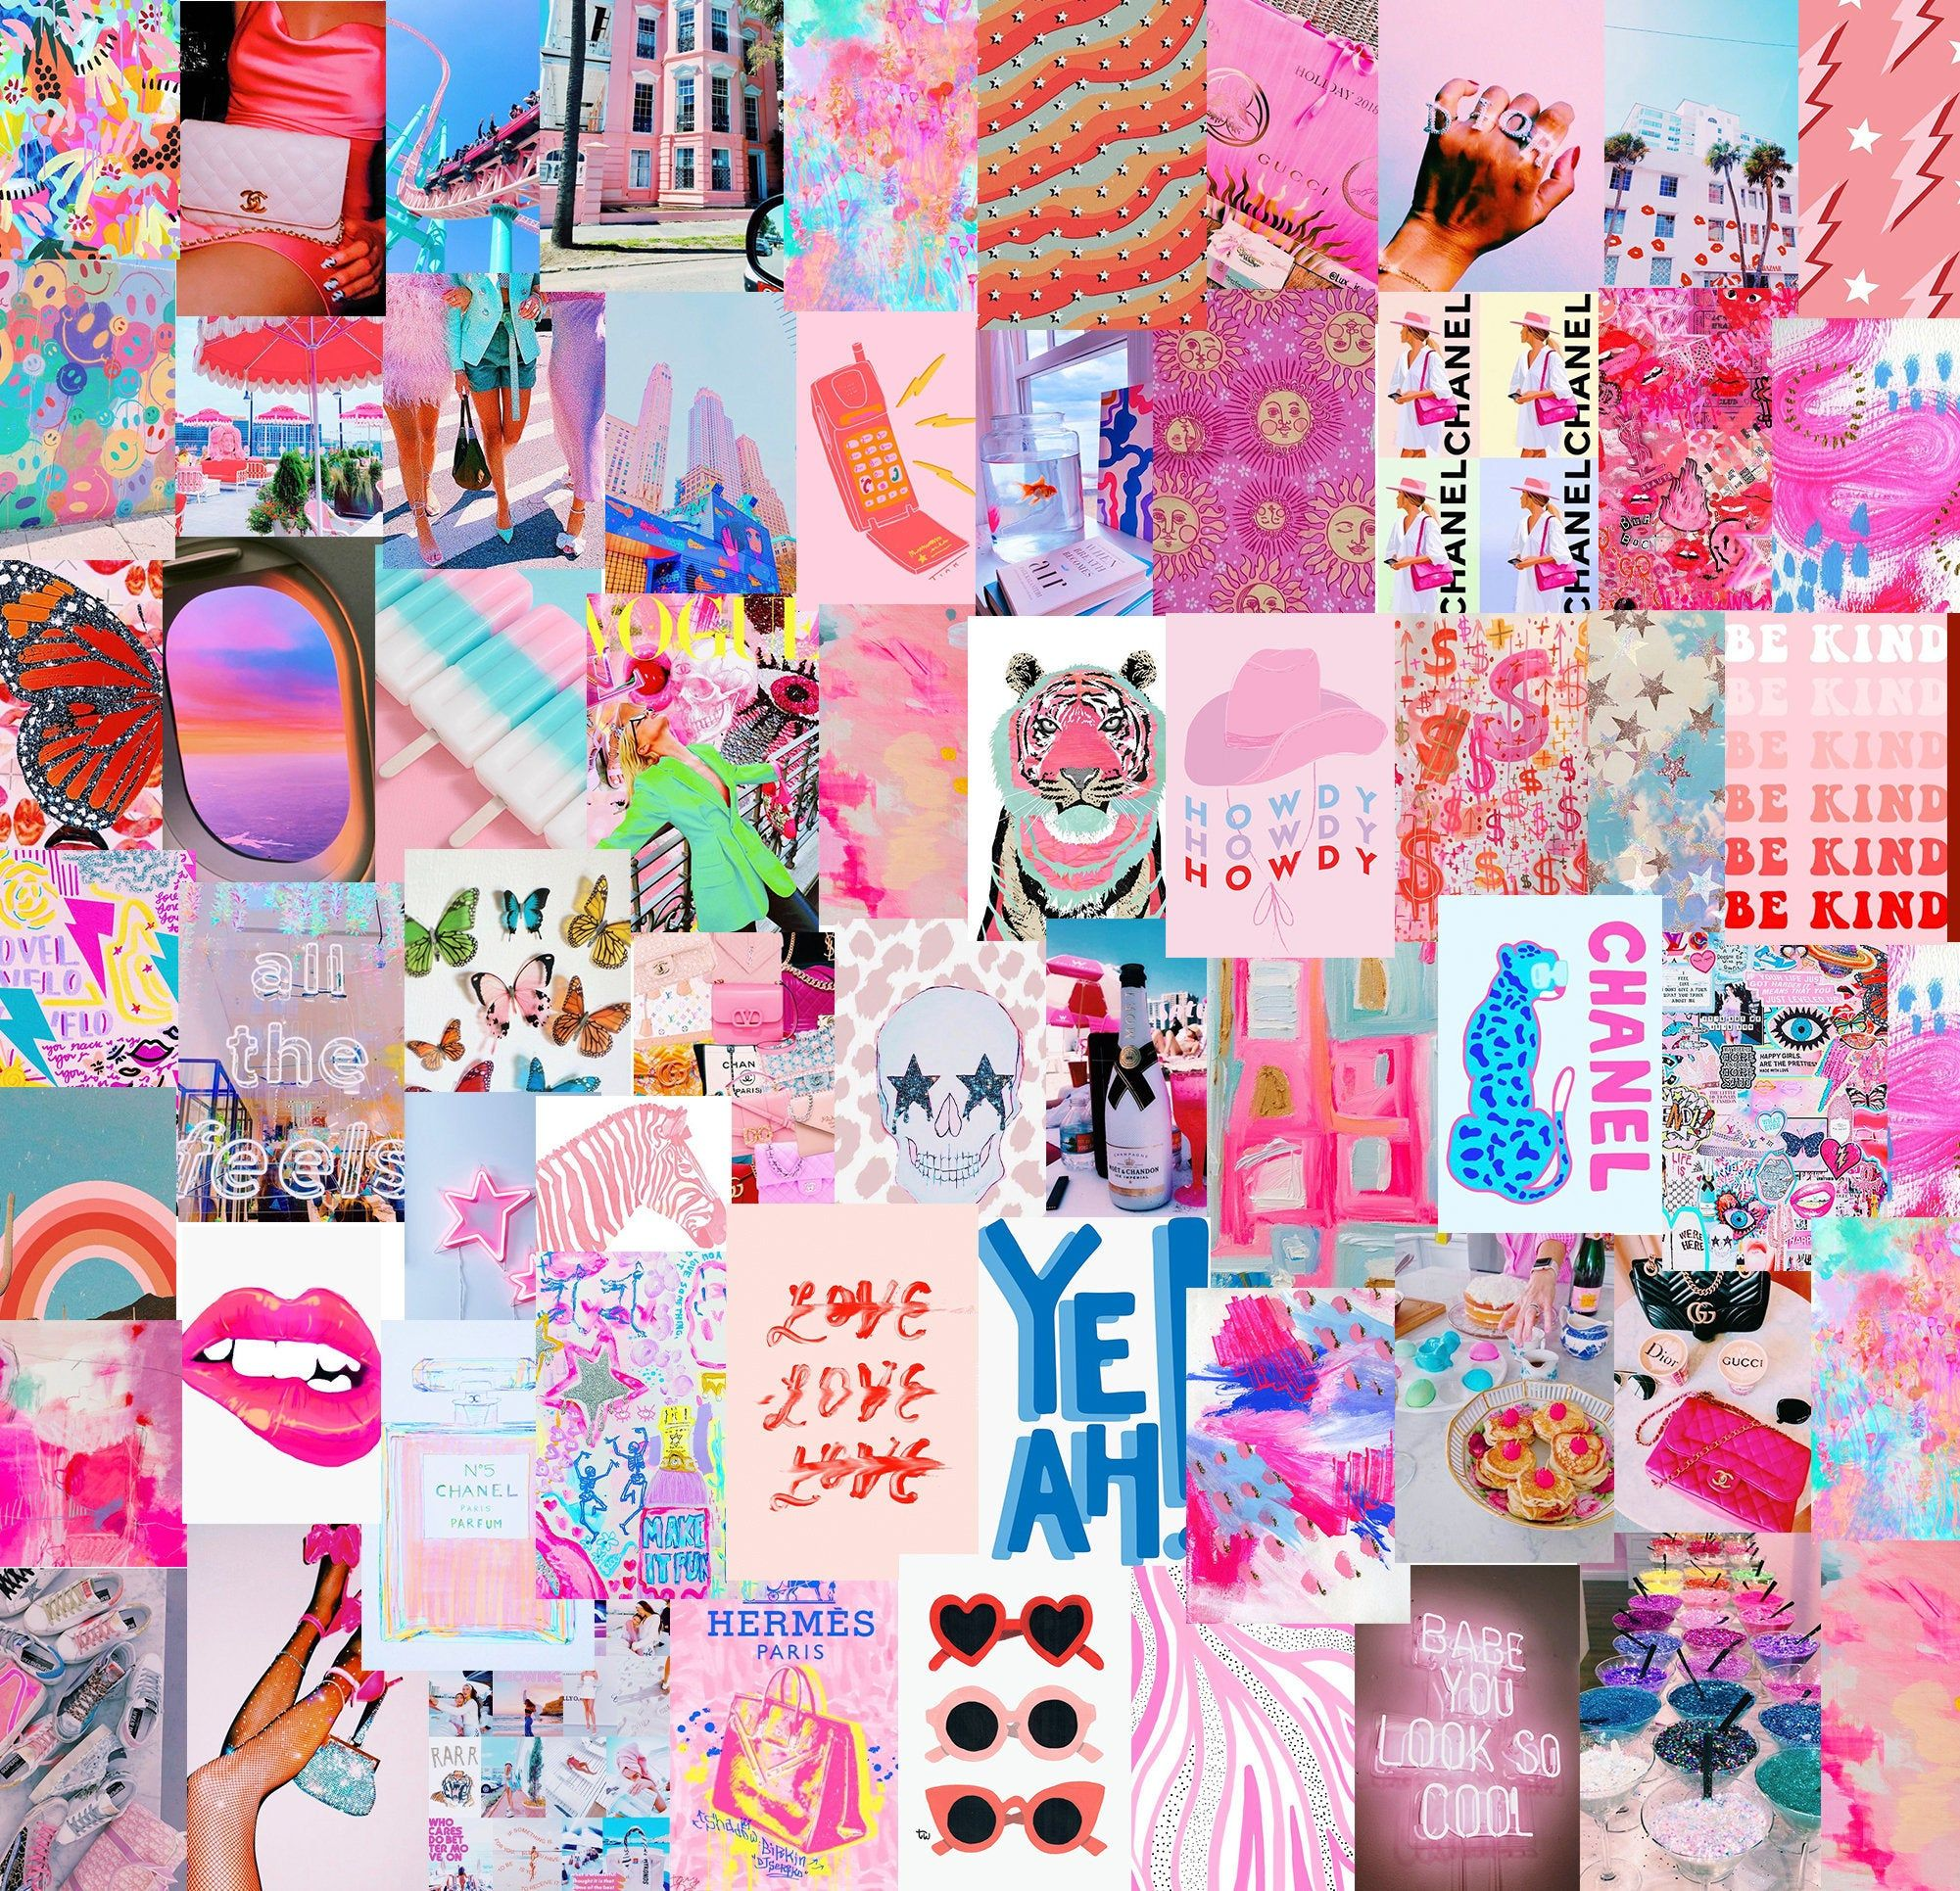 Ready to Print Neon Boujee Aesthetic, Bright Wall Collage Kit   Pack of 60 photos   Digital File